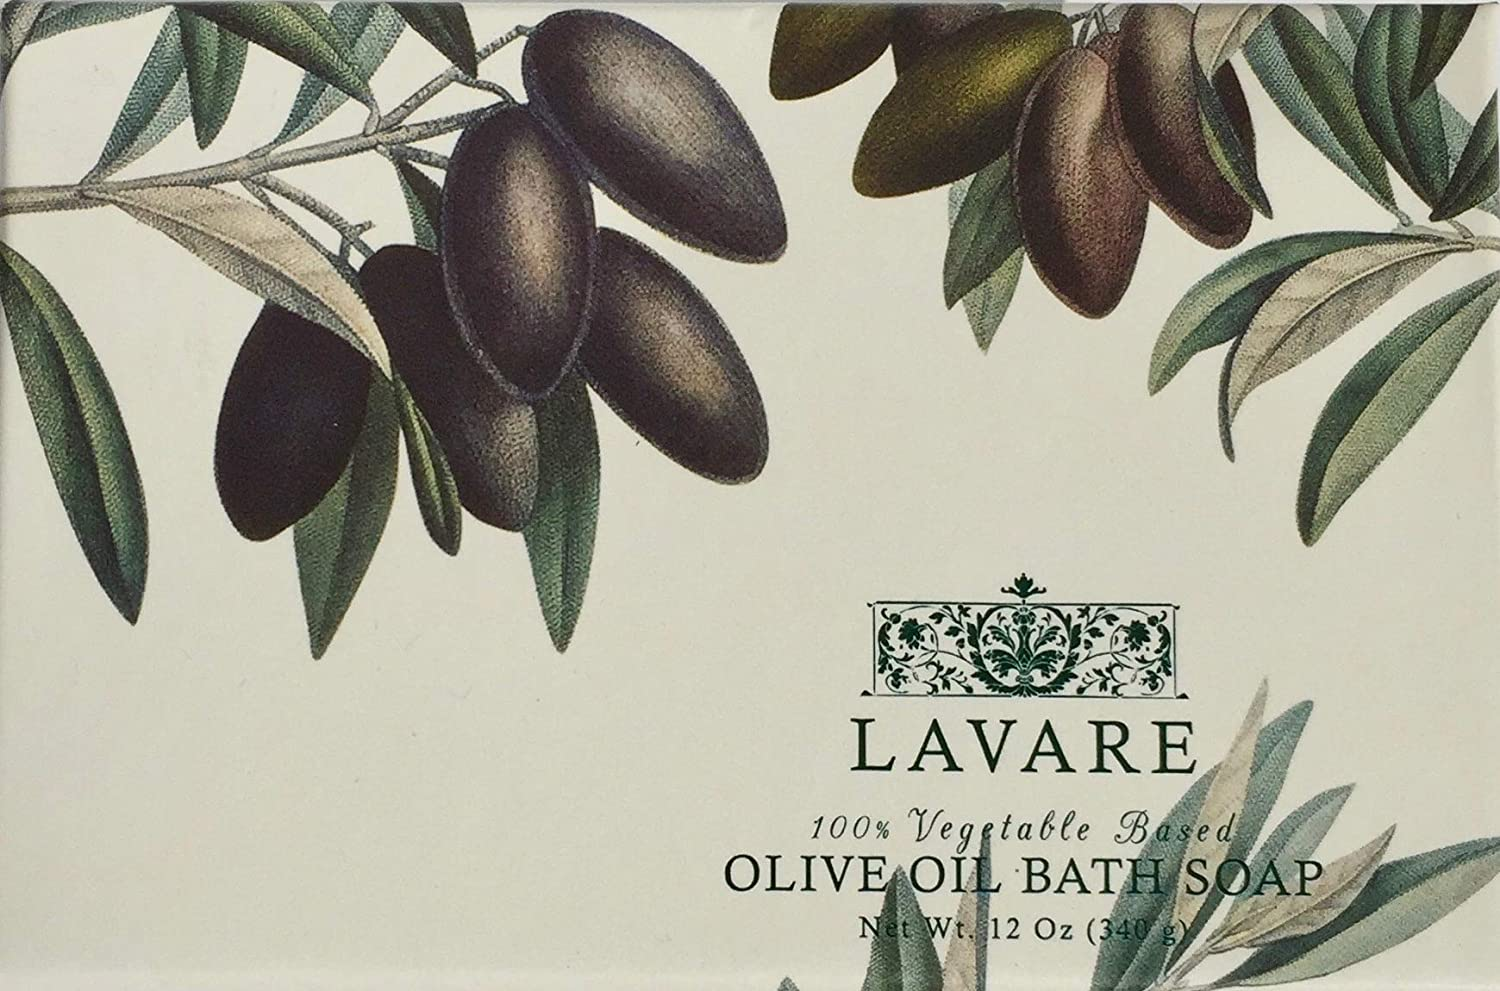 Amazon.com : Commonwealth Soap Extra Large Lavare Olive Oil Bath Soap 12 Oz. : Cst Box Soap : Beauty